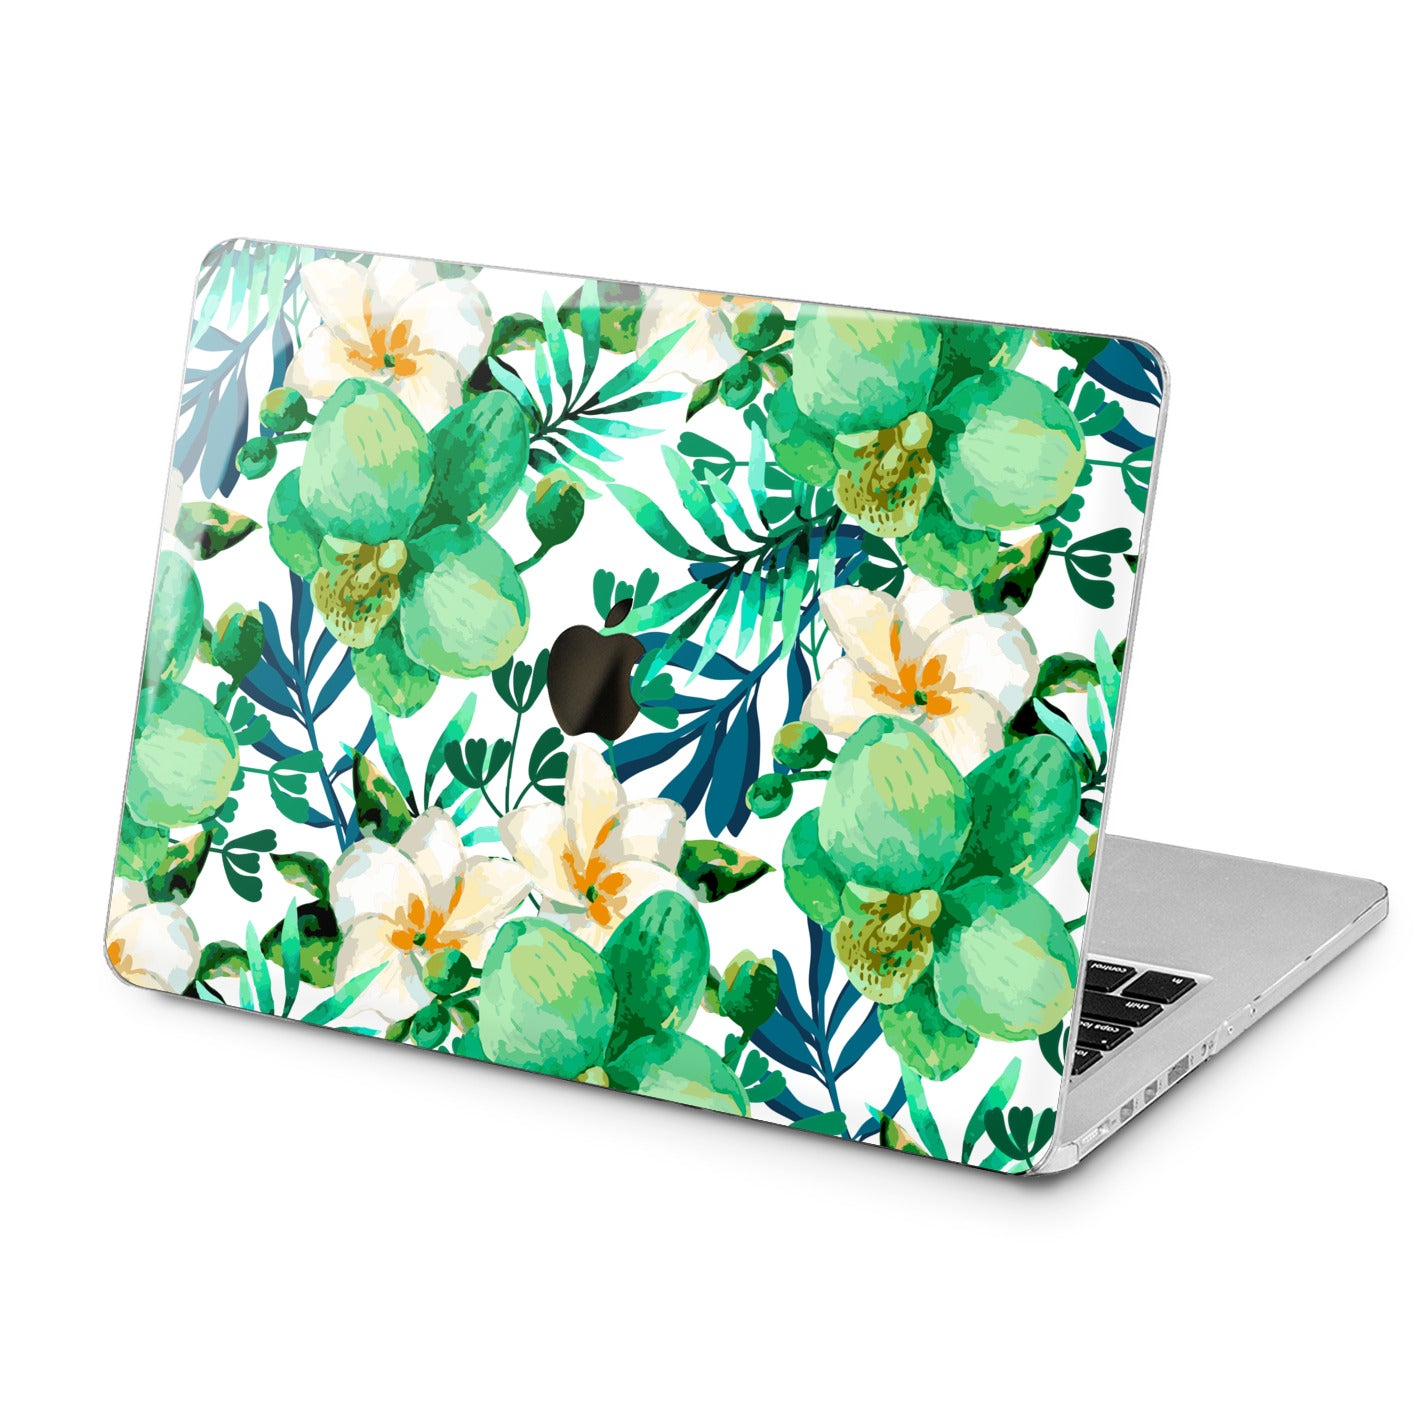 Lex Altern Lex Altern Green Orchid Case for your Laptop Apple Macbook.